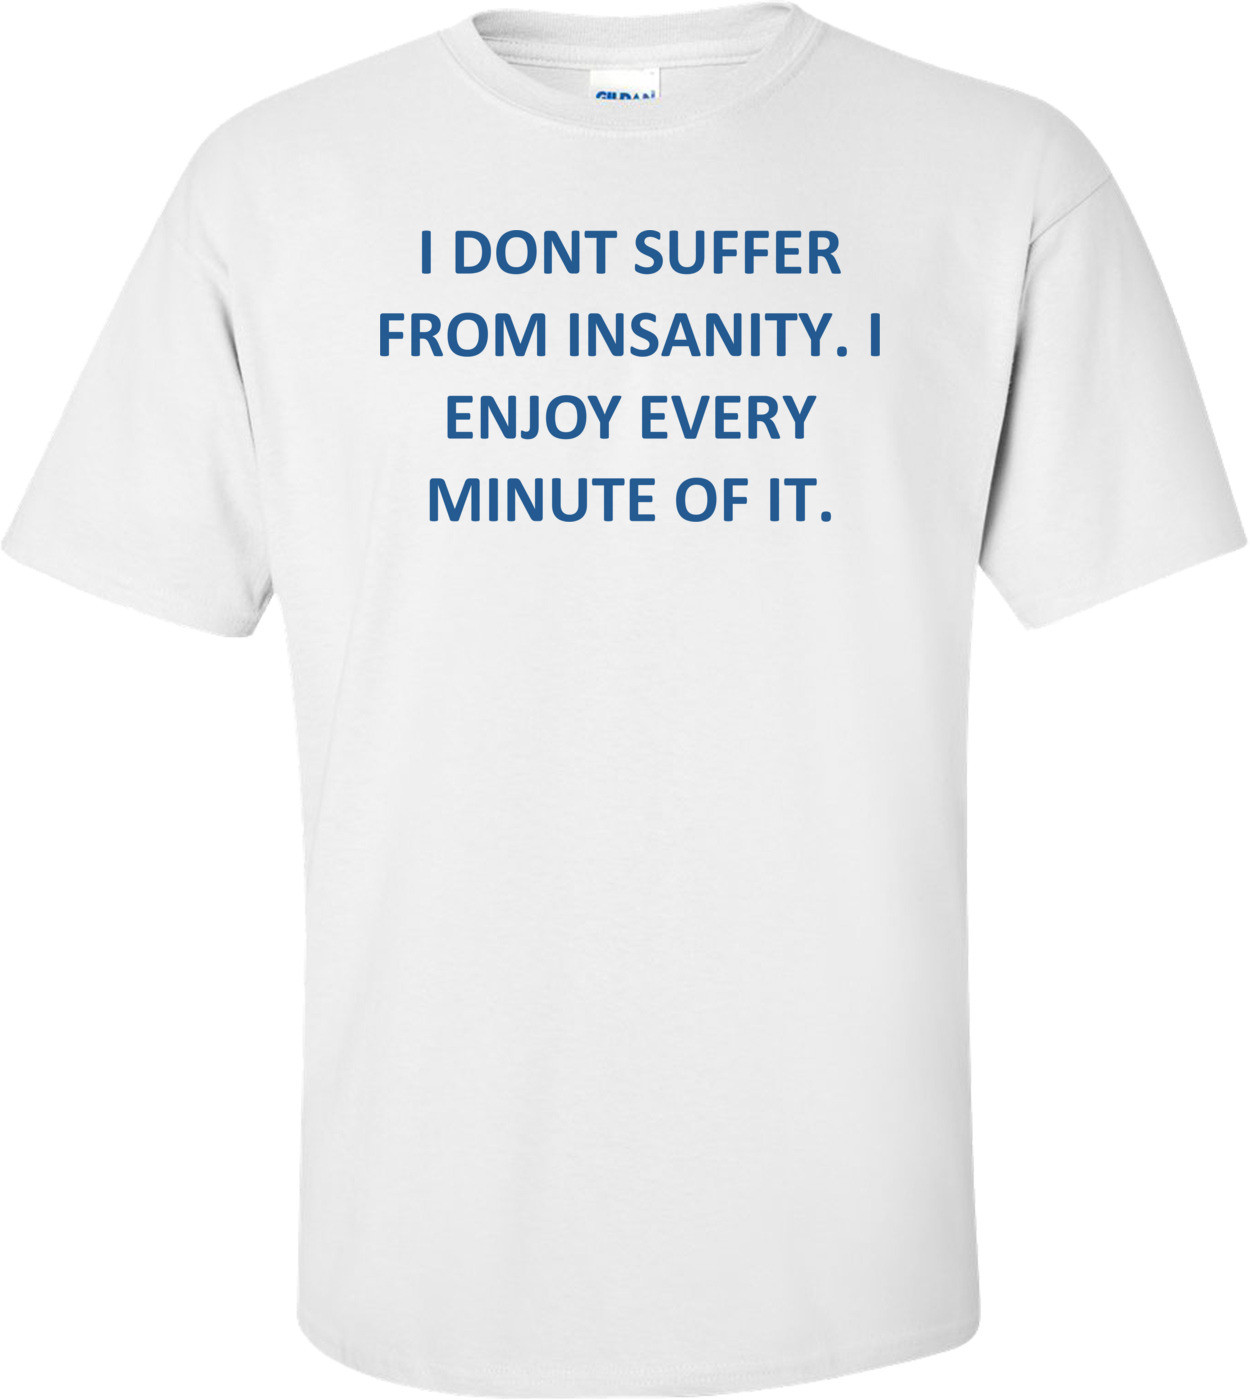 I DONT SUFFER FROM INSANITY. I ENJOY EVERY MINUTE OF IT. Shirt